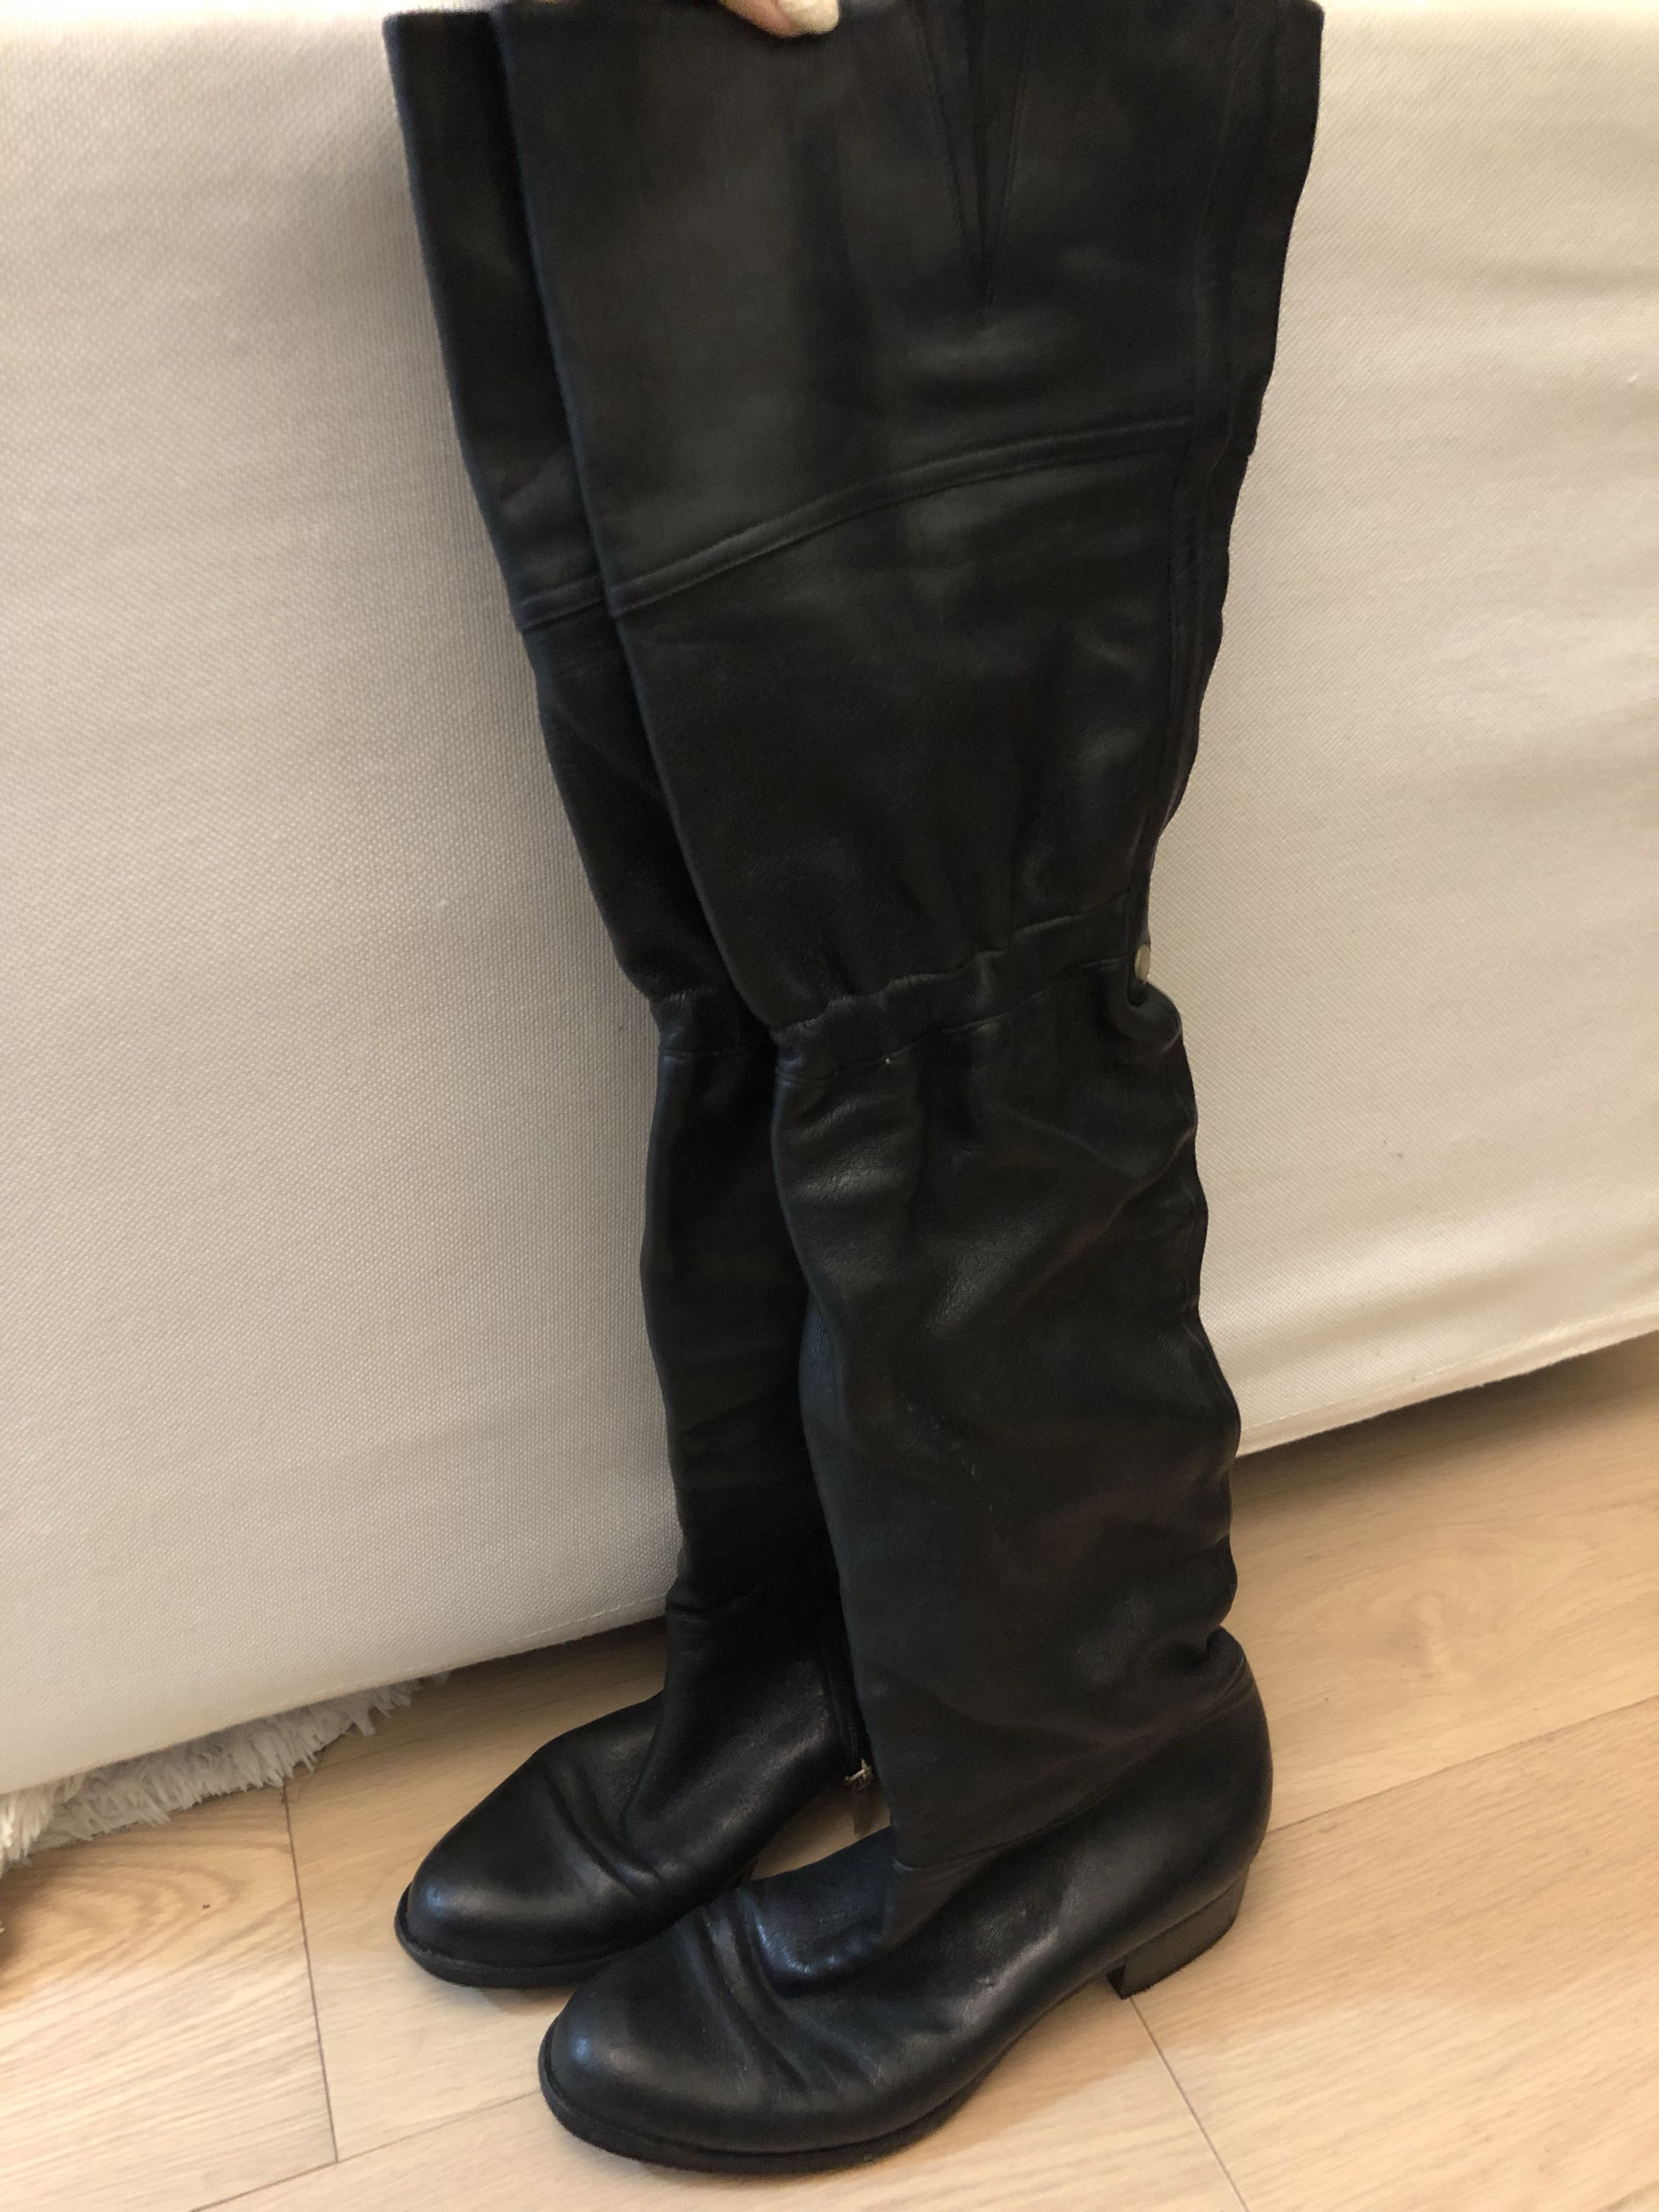 44b01bab3bb 💯% Authentic Jimmy Choo 100% leather thigh high boots black ...